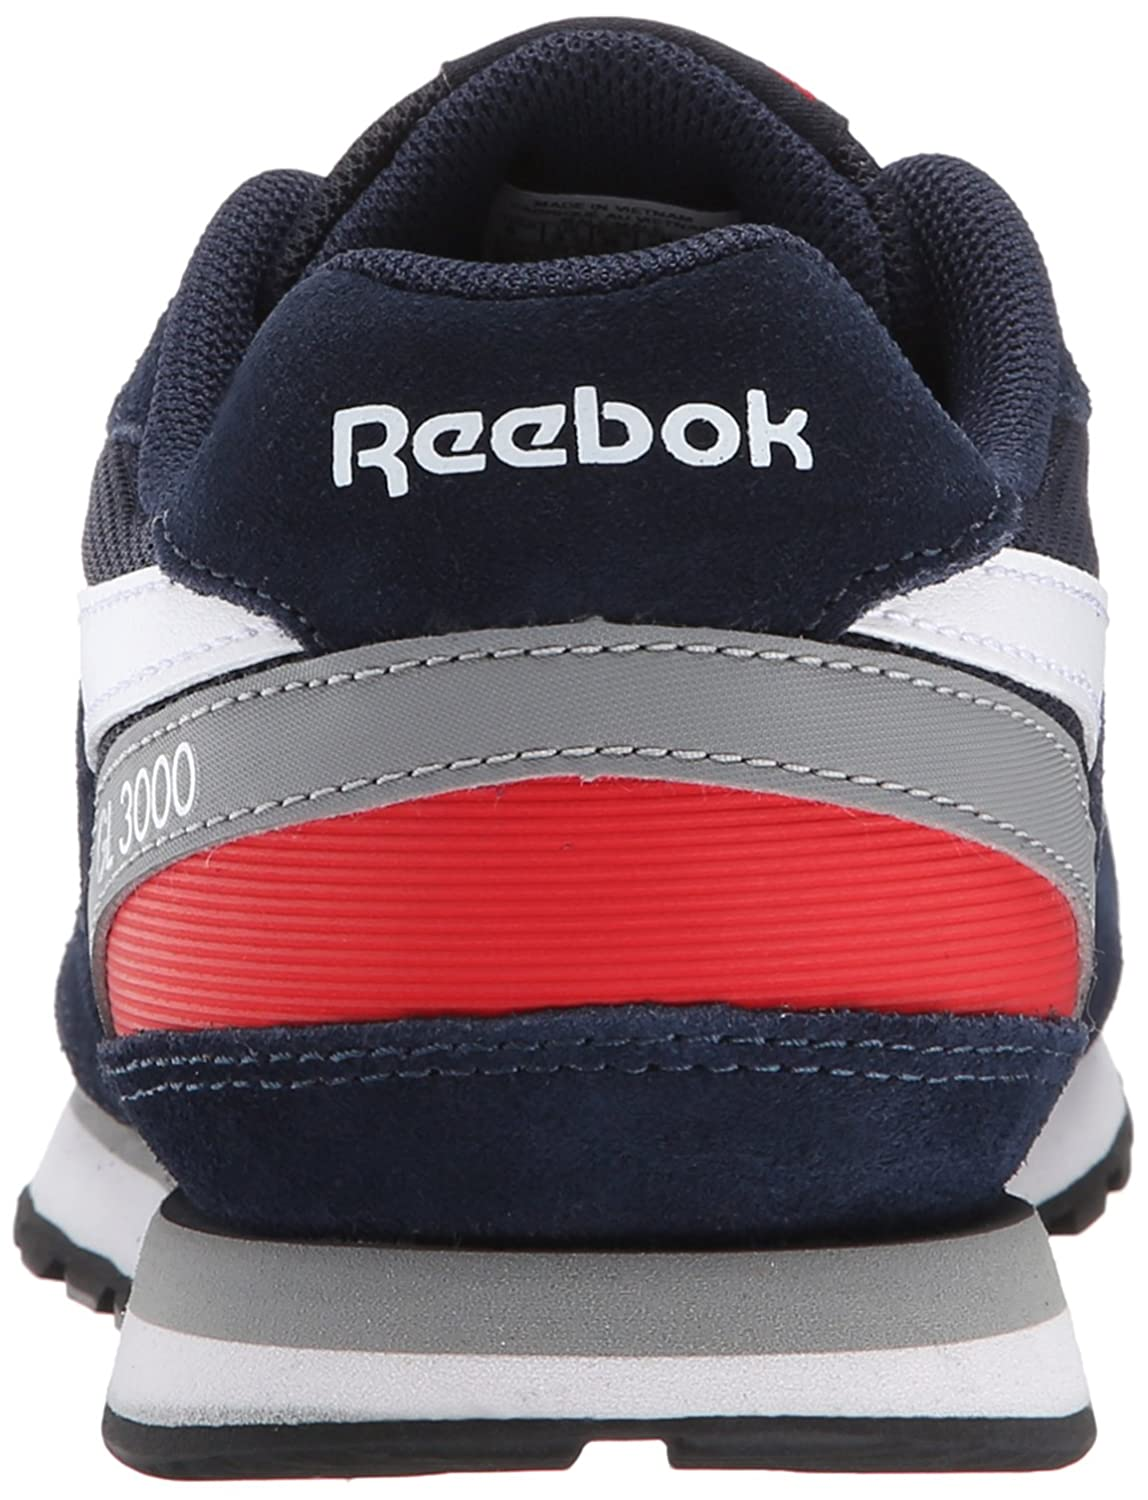 reebok gl 3000 womens grey cheap   OFF76% The Largest Catalog Discounts 49651bad8